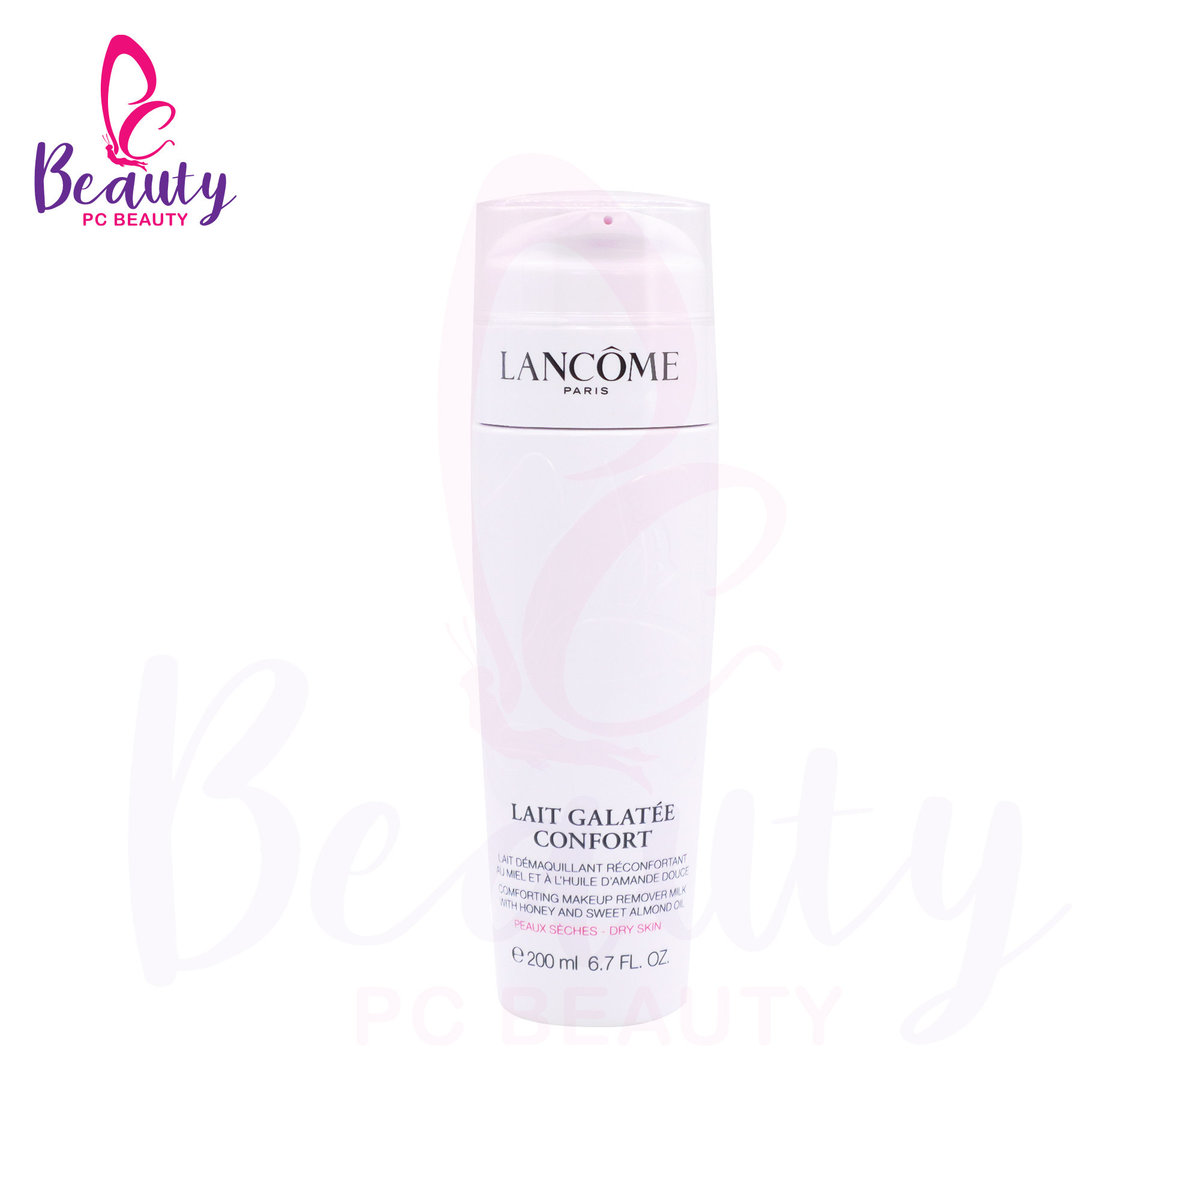 LANCOME LAIT GALATEE CONFORT CLEANSER 200ML (DRY SKIN) [Parallel Import Product]